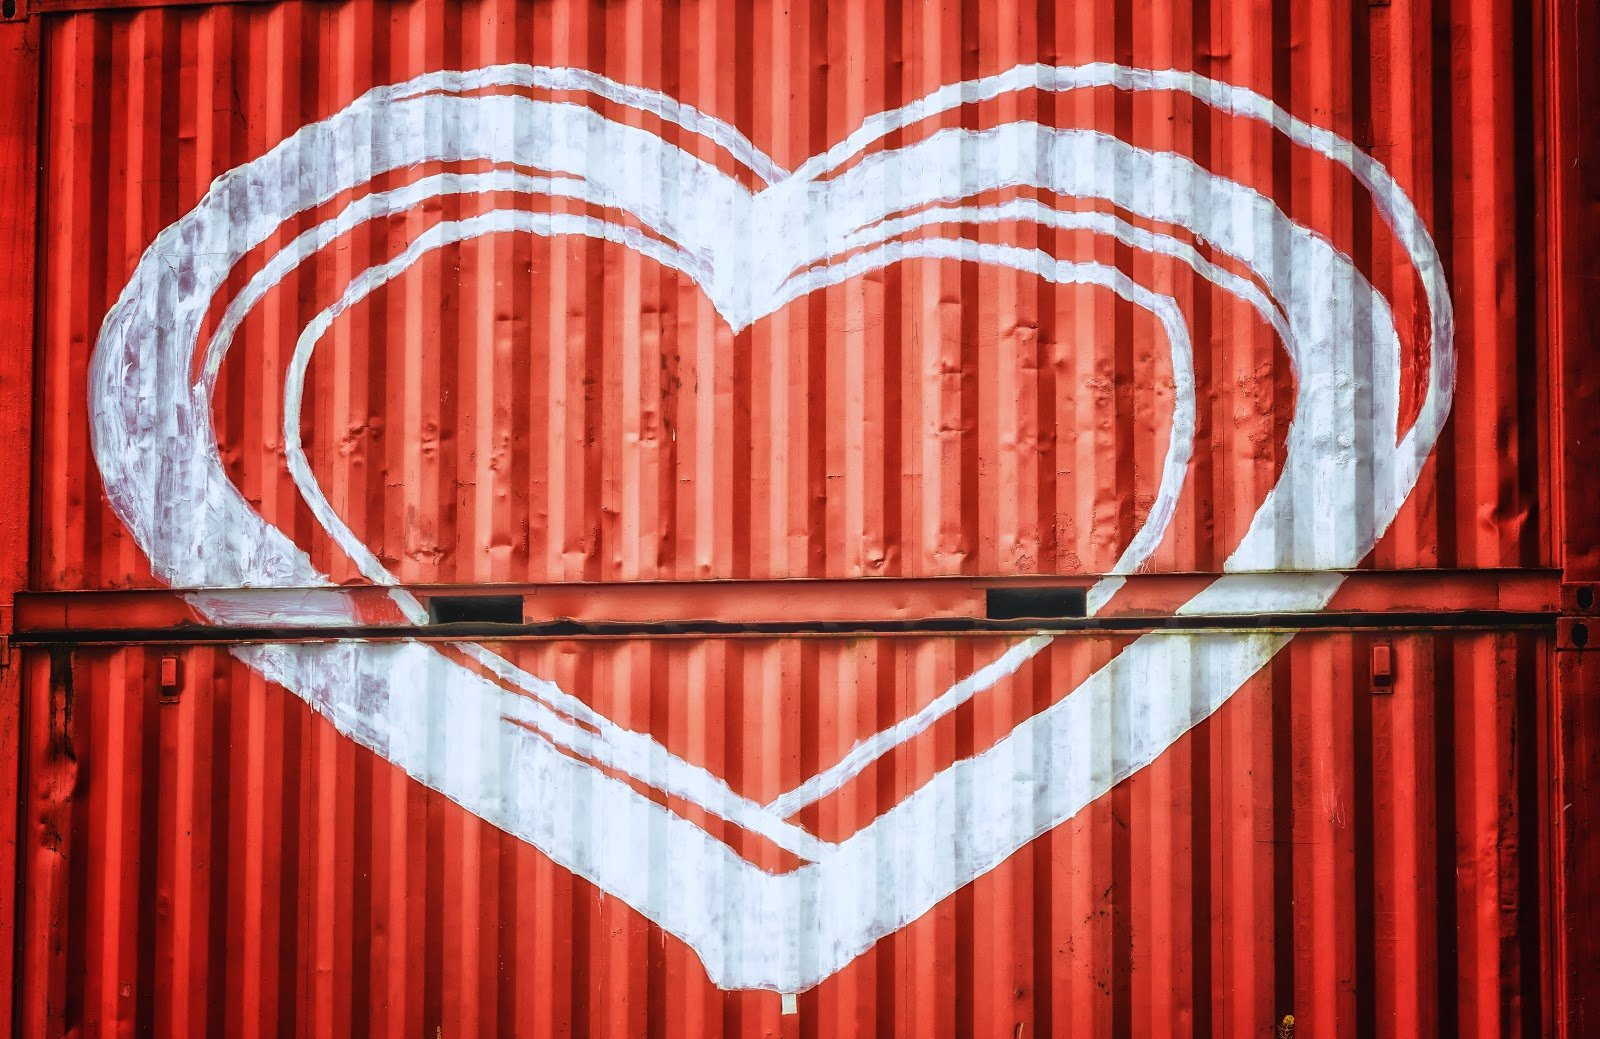 White heart drawn on red storage containers